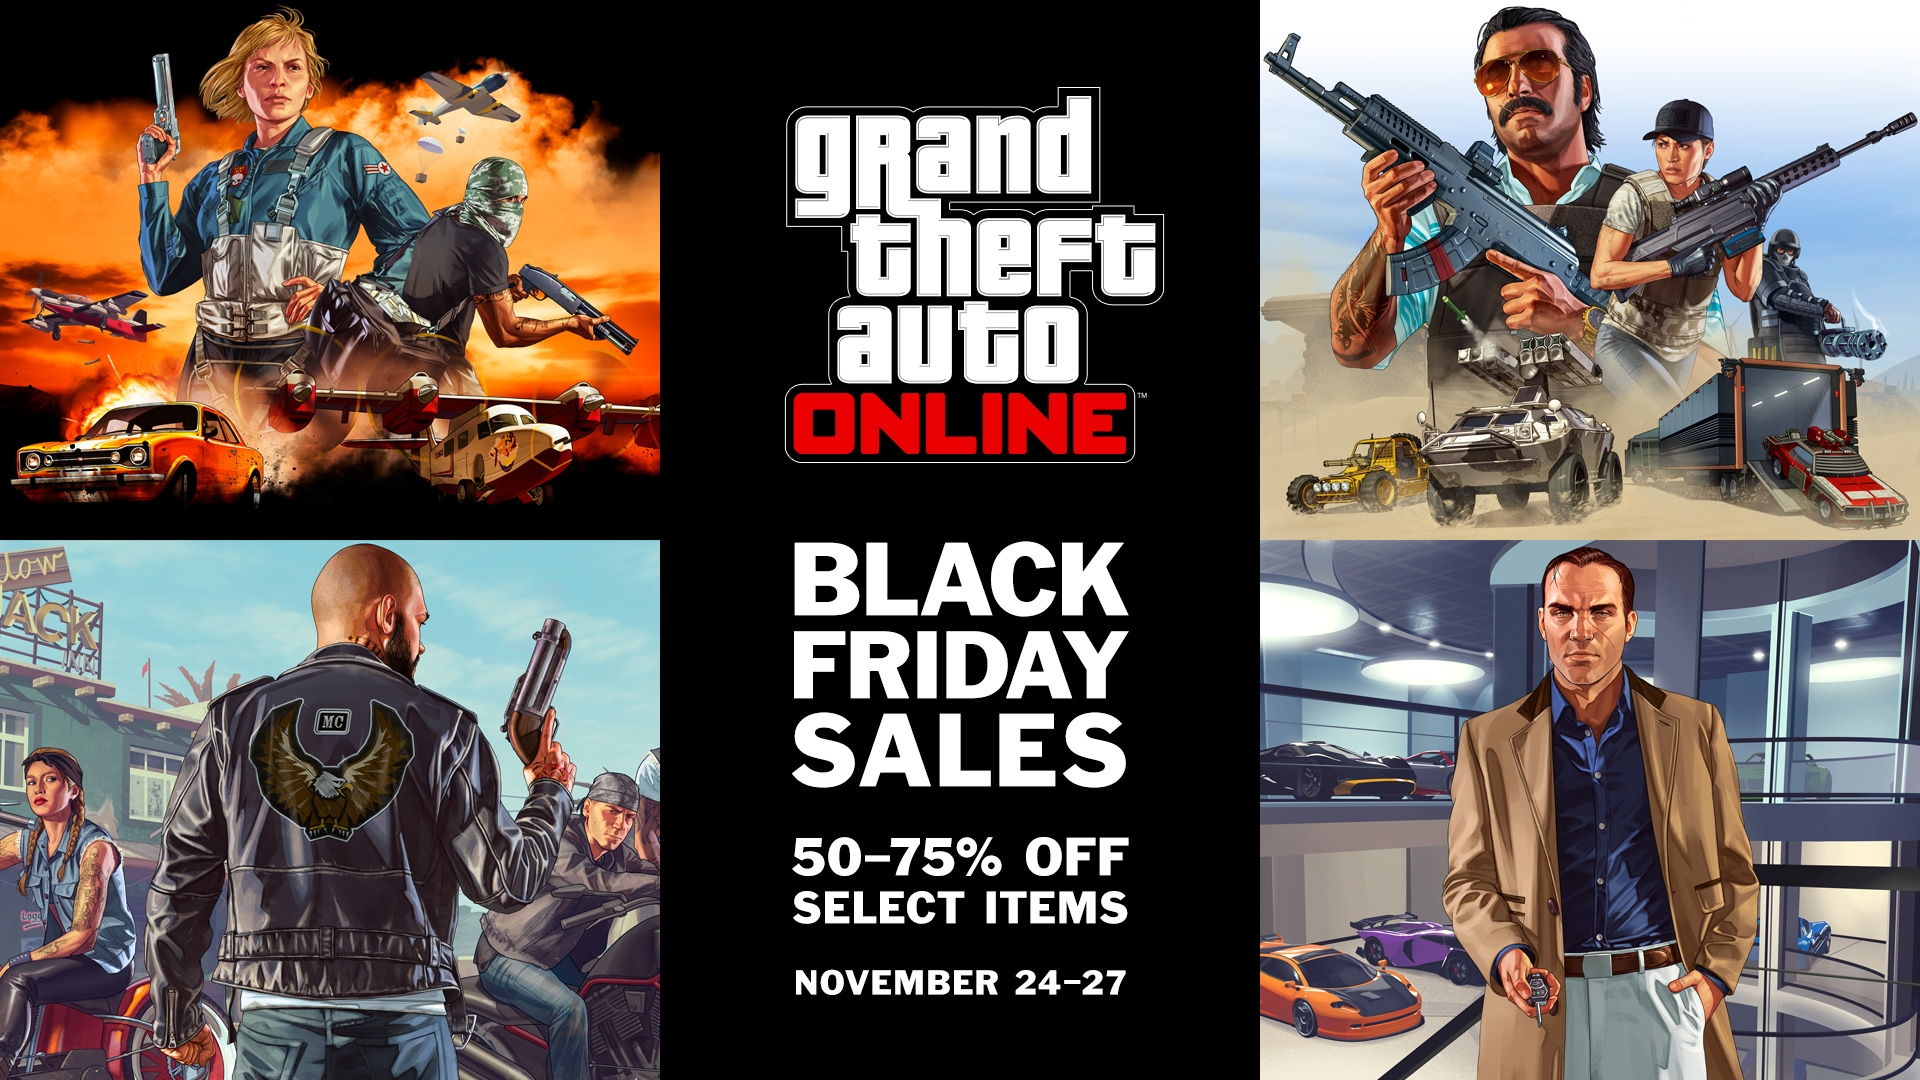 24 Movie Online Black Friday Weekend Discounts In Gta Online Nov 24 27